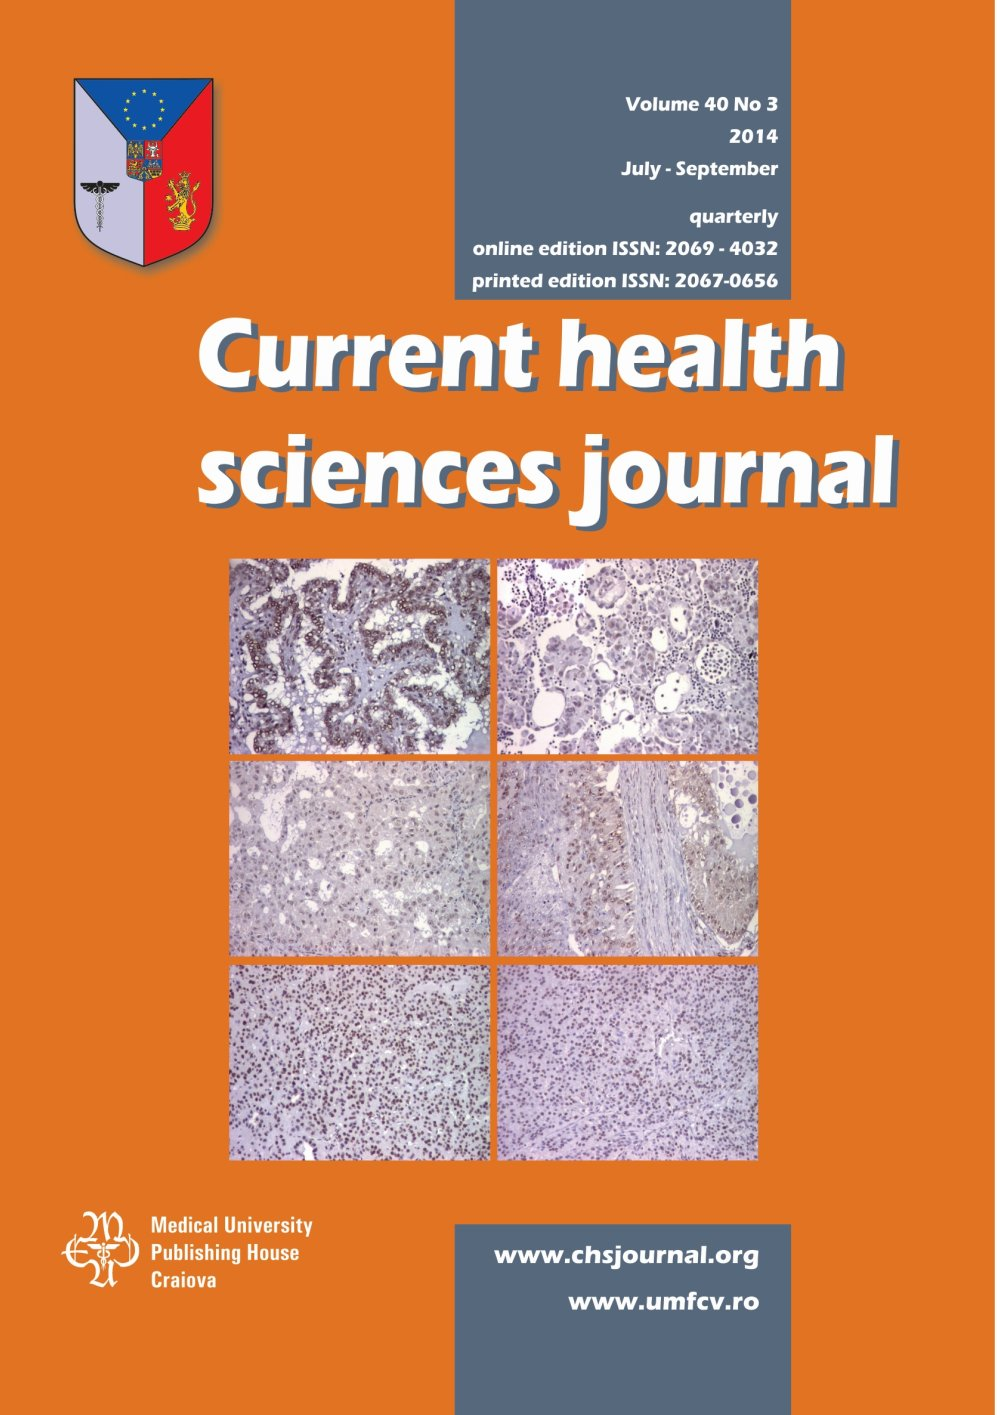 Current Health Sciences Journal, vol. 40 no. 3, 2014